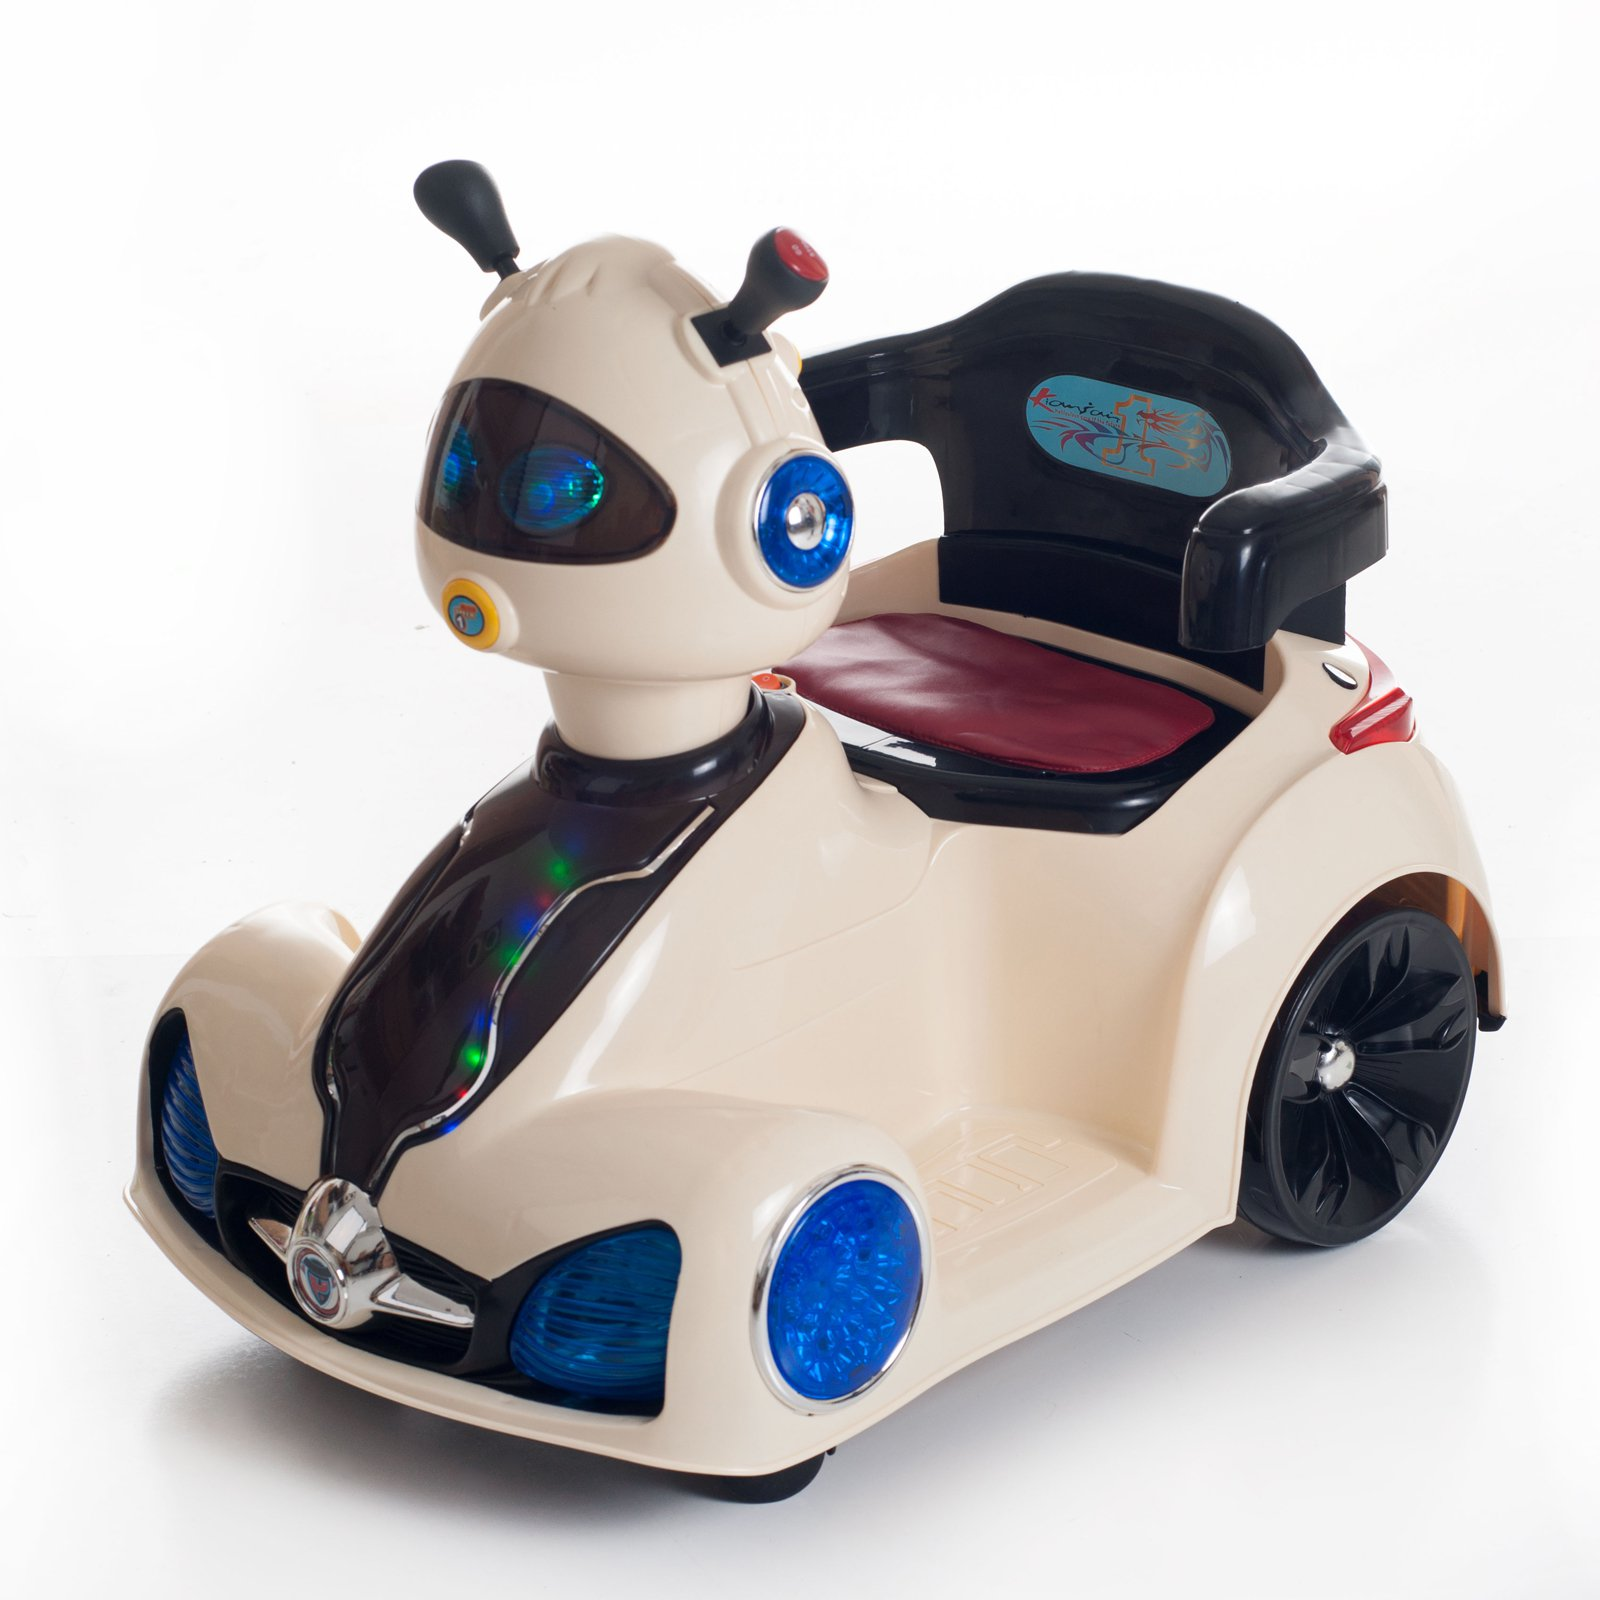 Ride on Toy, Remote Control Space Car for Kids by Lil' Rider - Battery Powered, Toys for Boys and Girls, 2- 6 Year Old